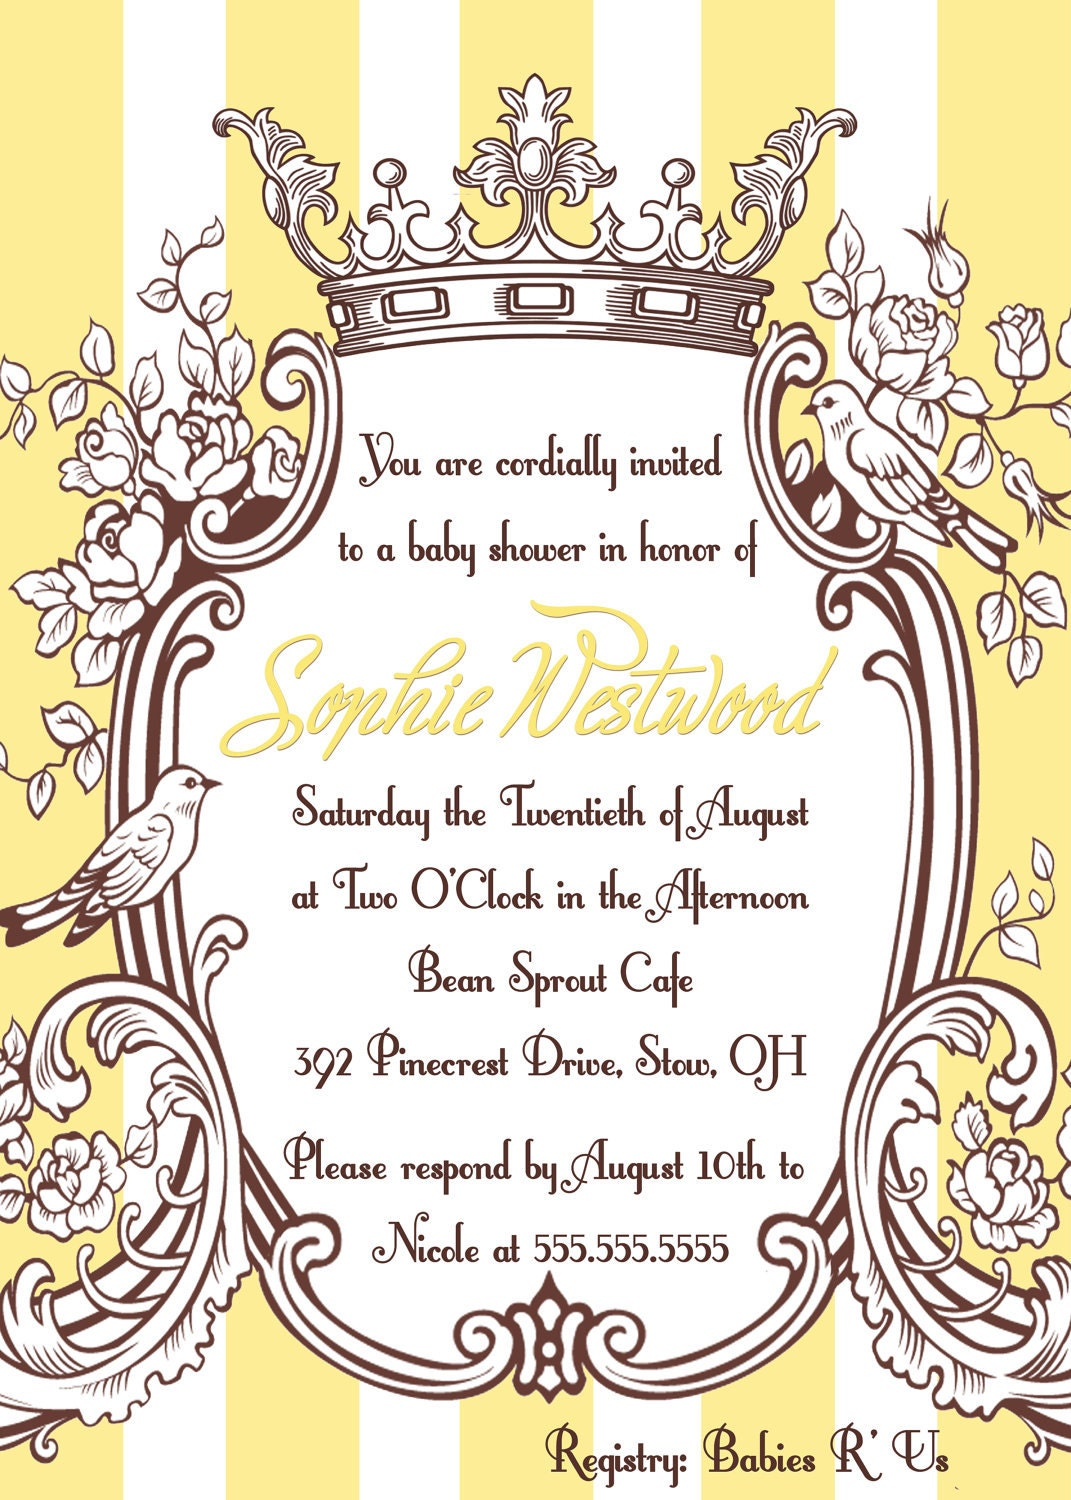 Search Results for: Free Templates For Invitation Printable/page/2